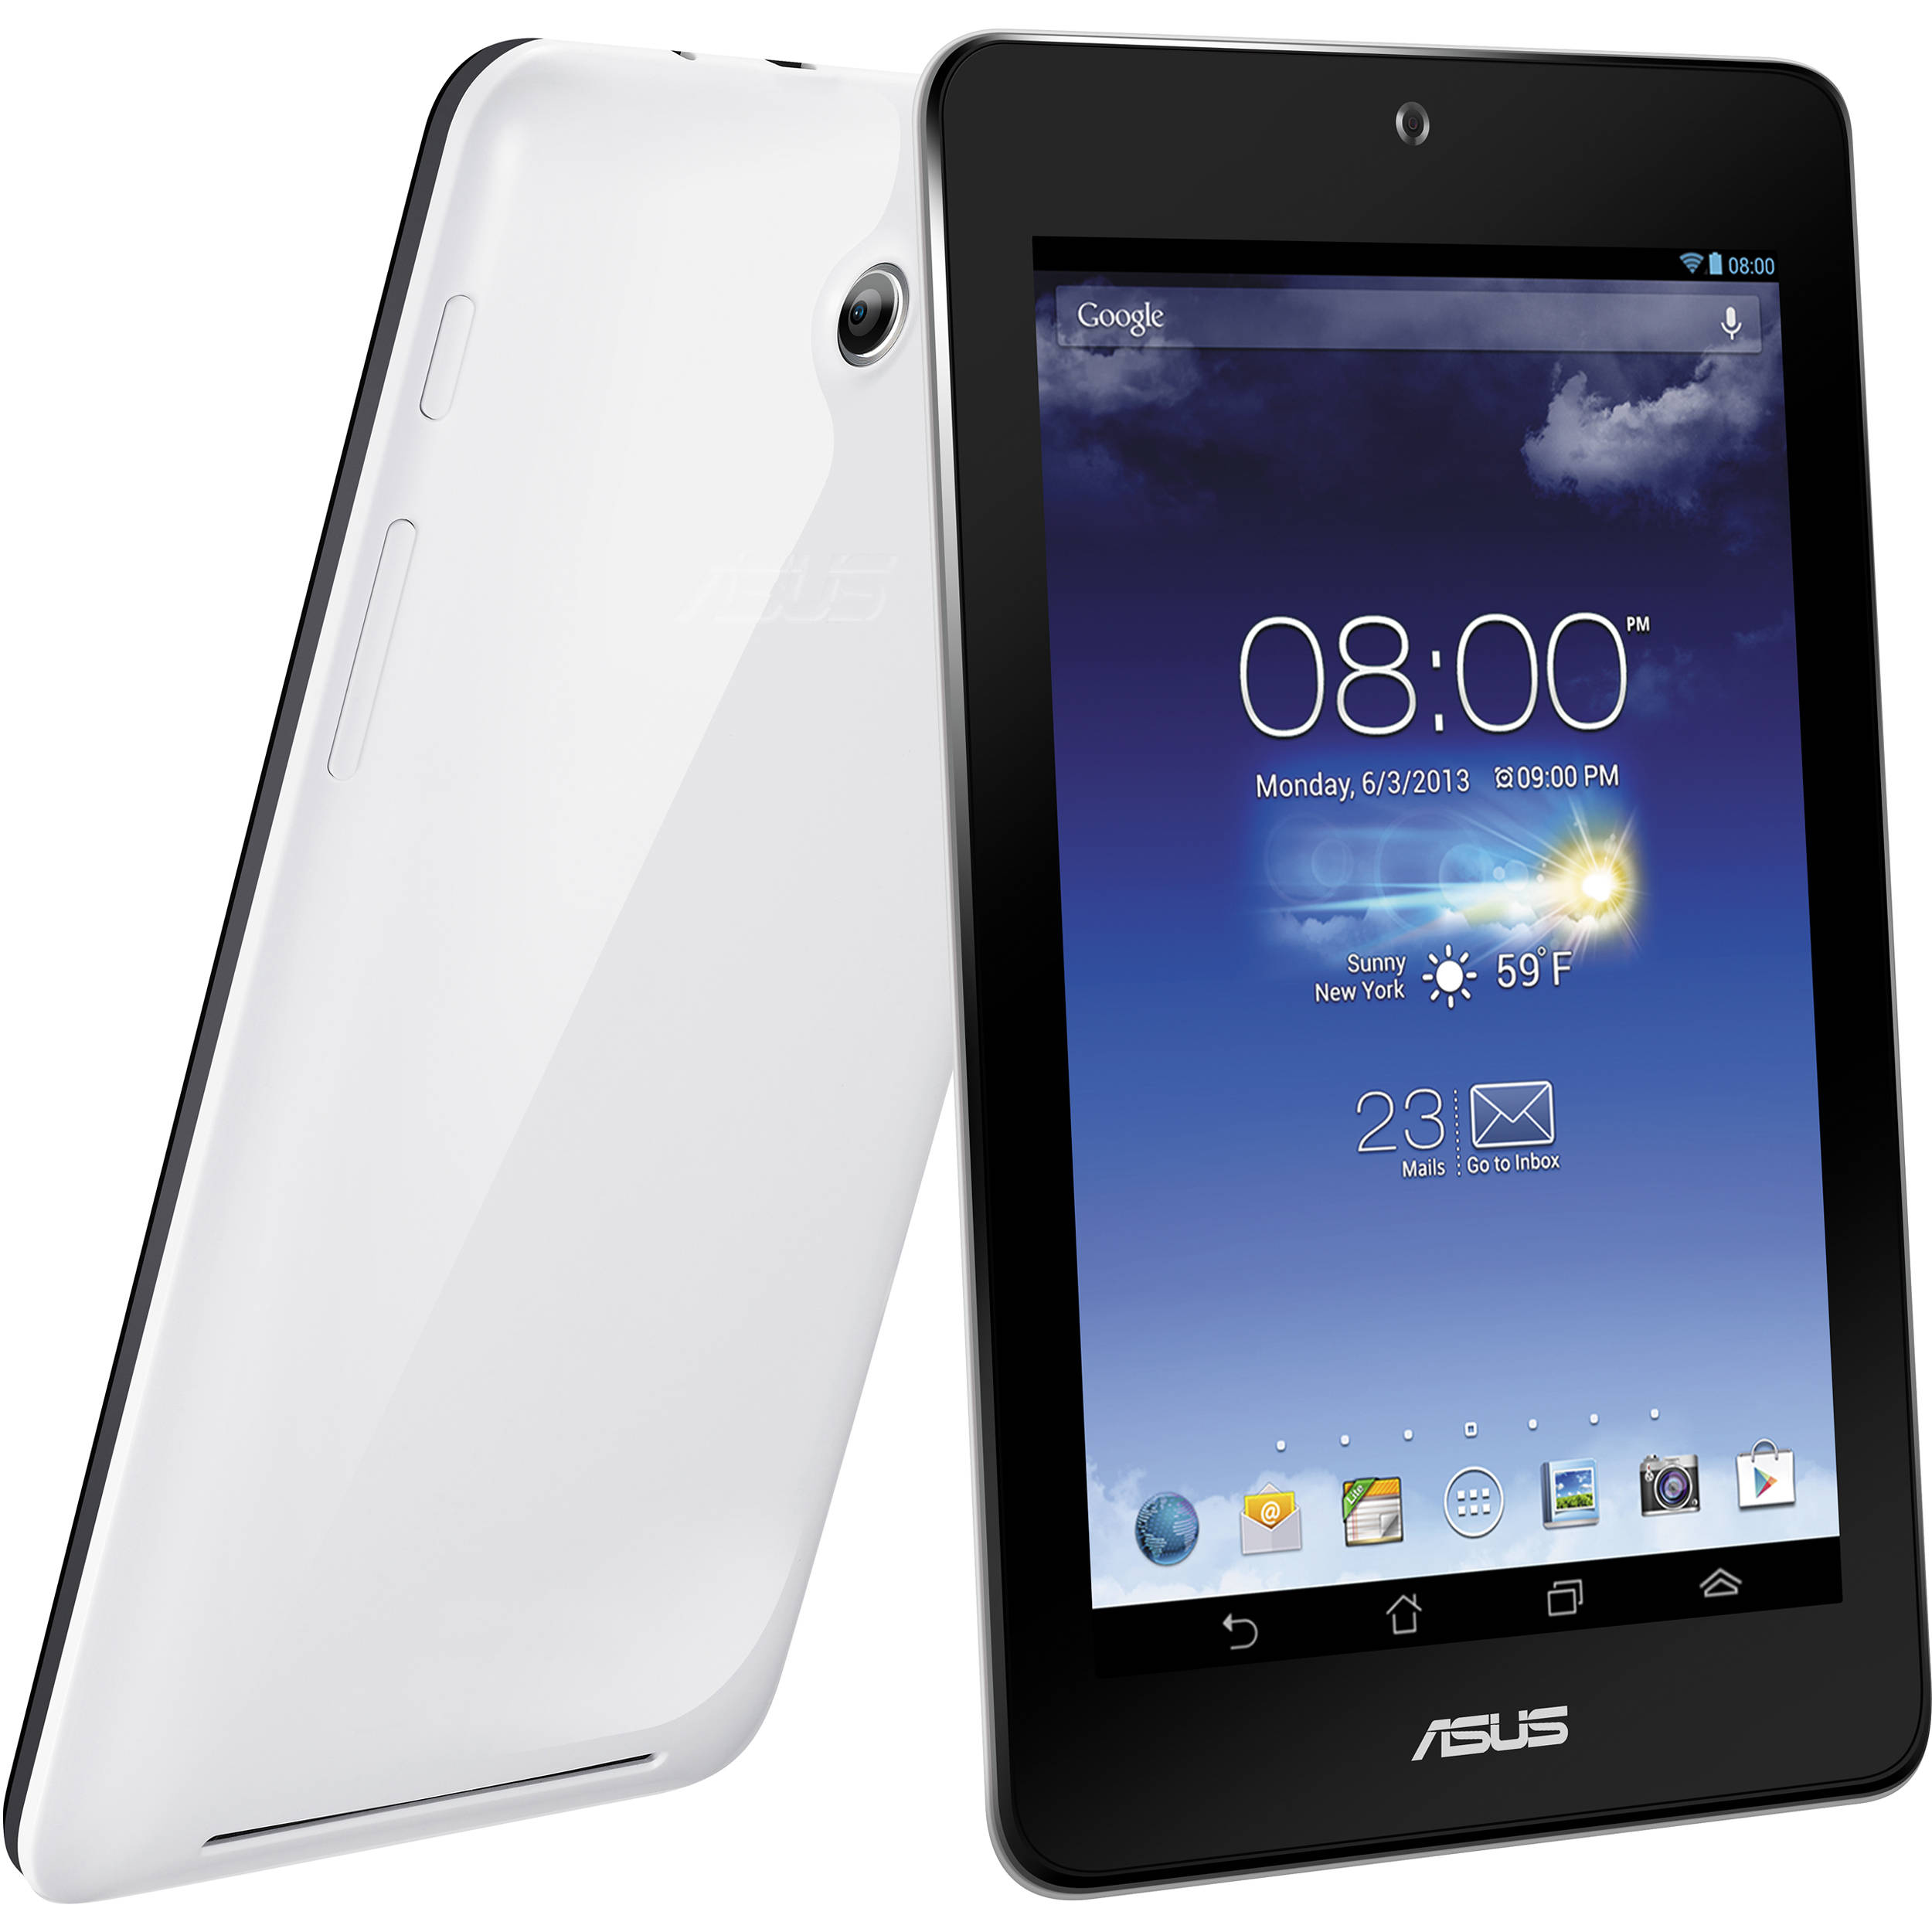 asus memo pad hd 7 inch 16gb tablet review odd thing for